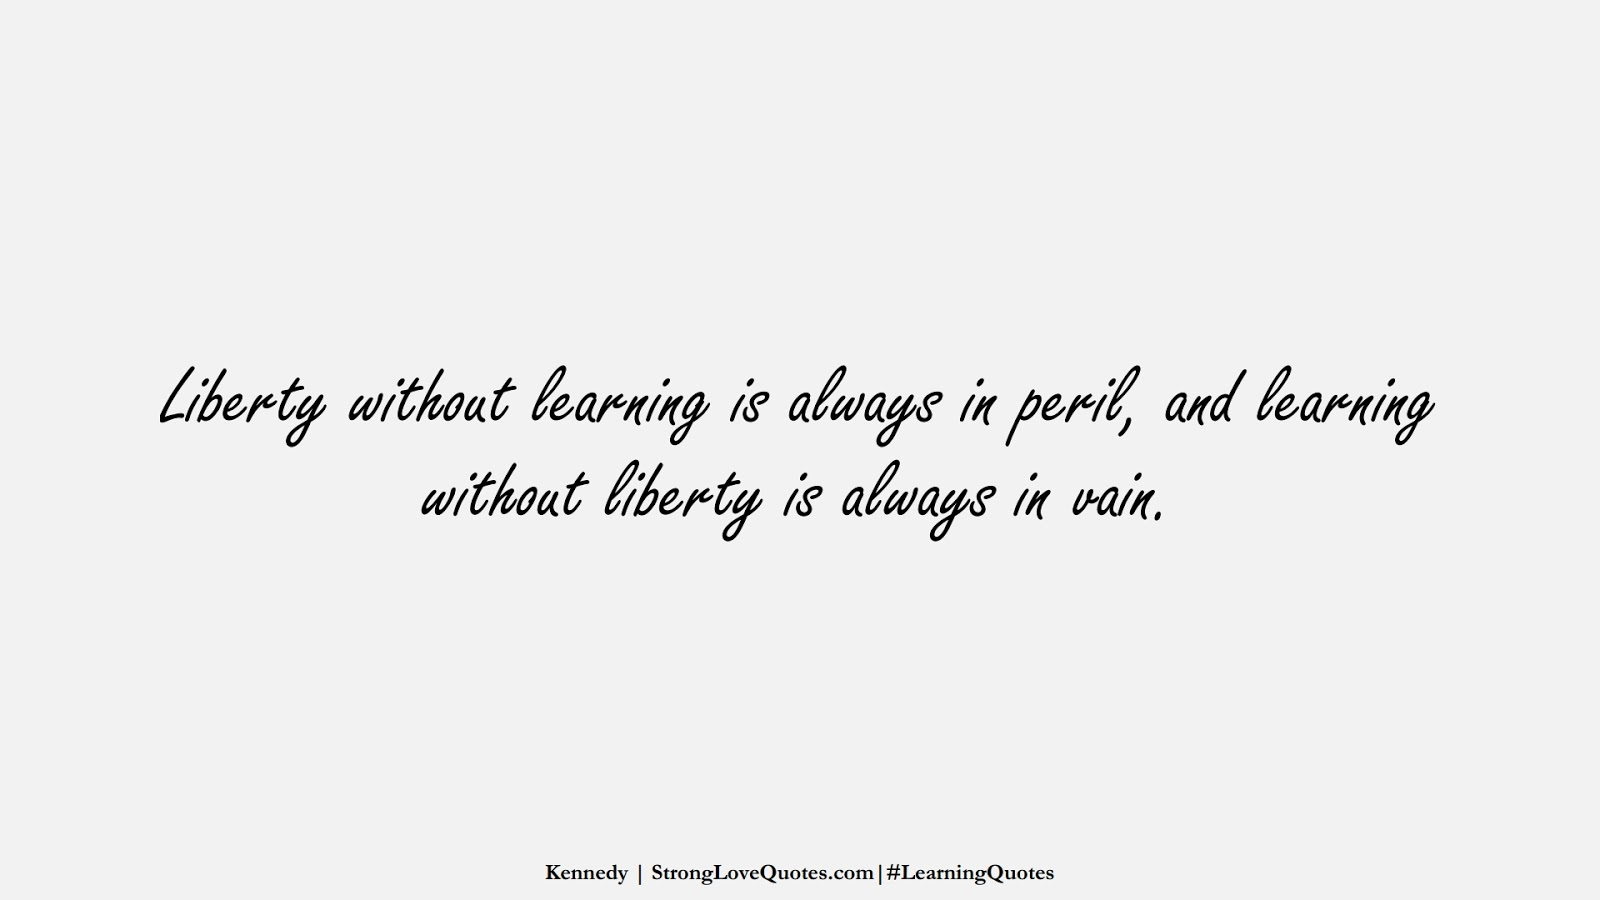 Liberty without learning is always in peril, and learning without liberty is always in vain. (Kennedy);  #LearningQuotes